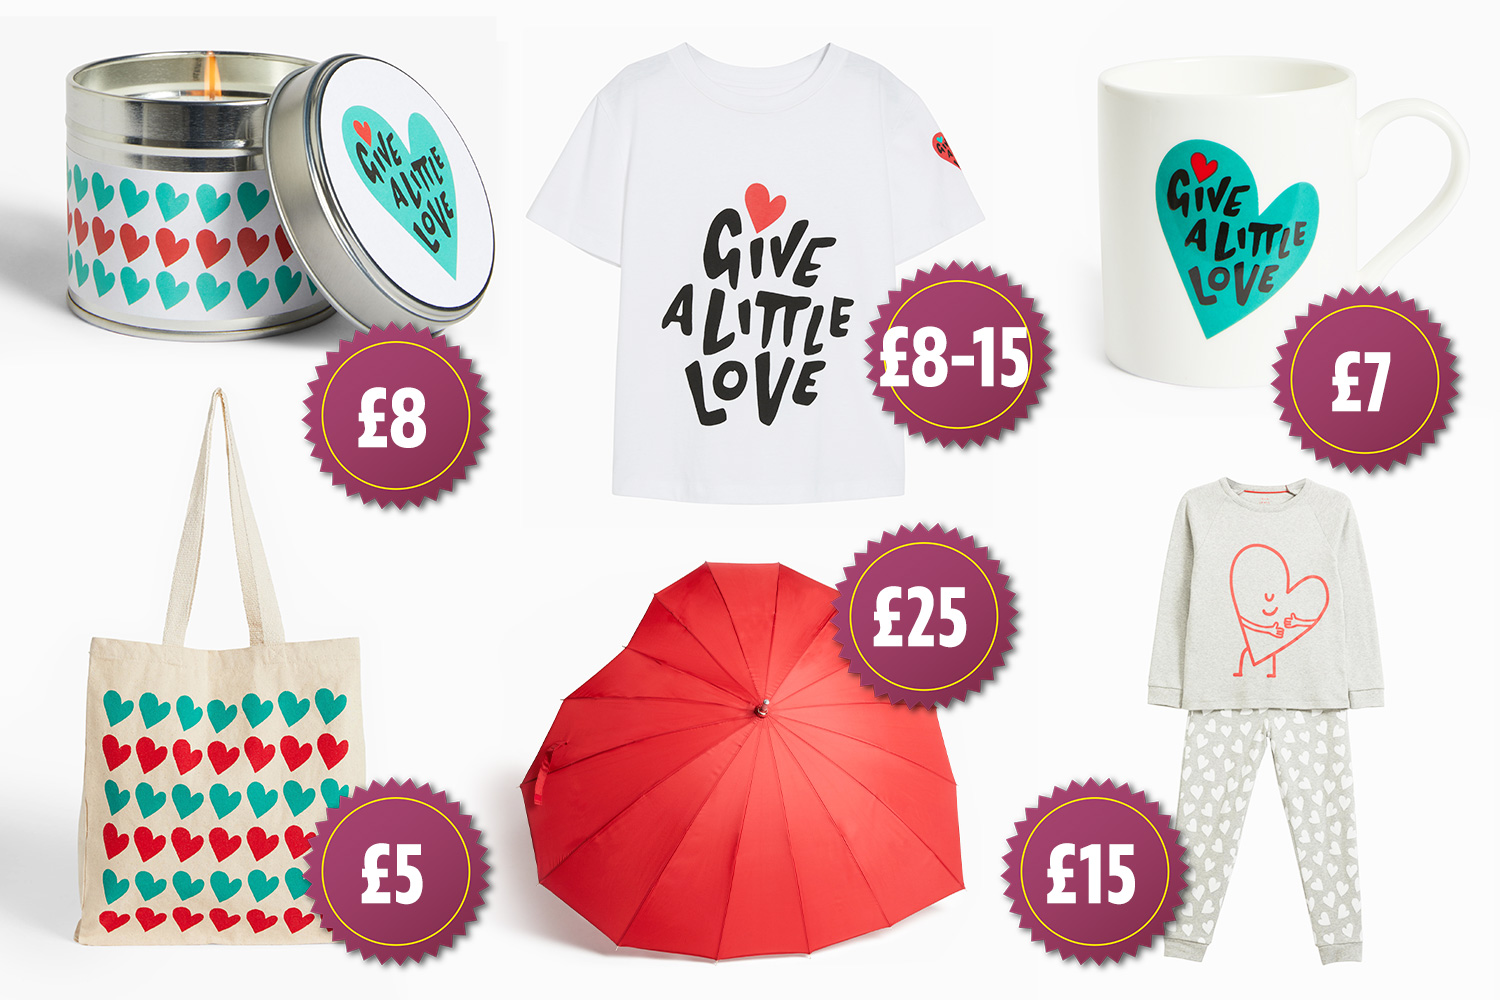 Here's what merchandise you'll be able to buy this year from John Lewis